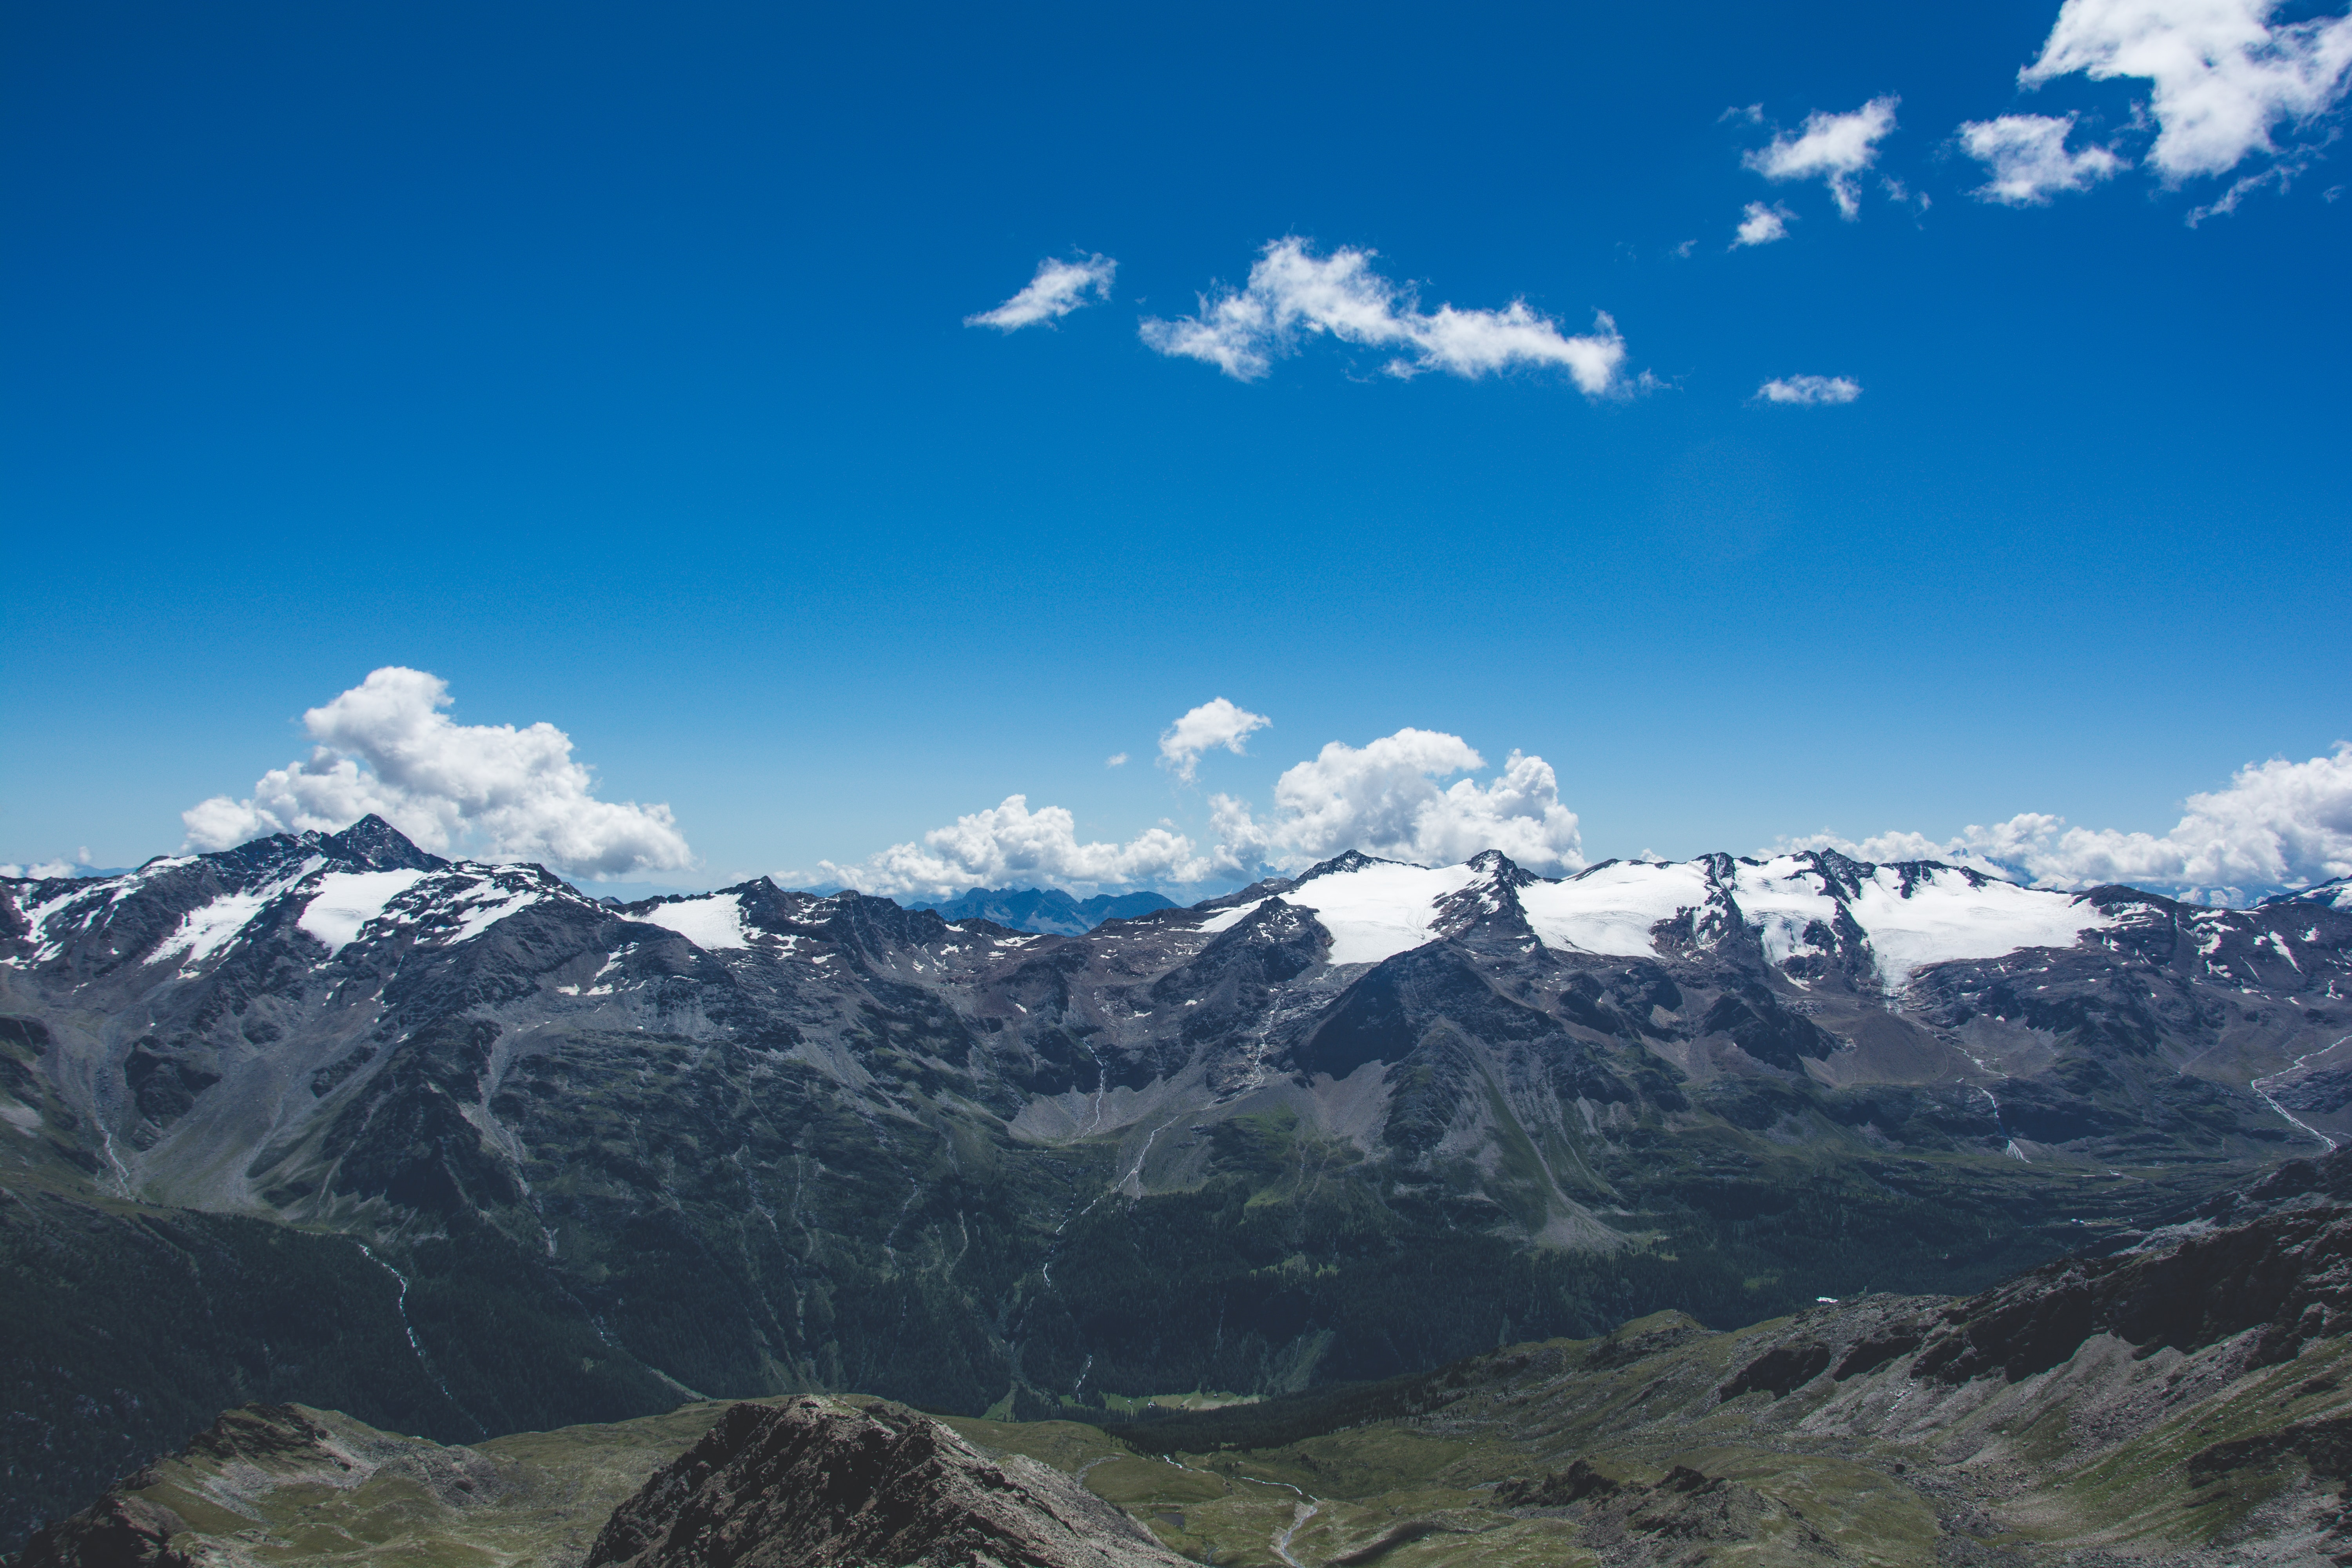 Snow-capped mountains under a blue sky with scattered clouds